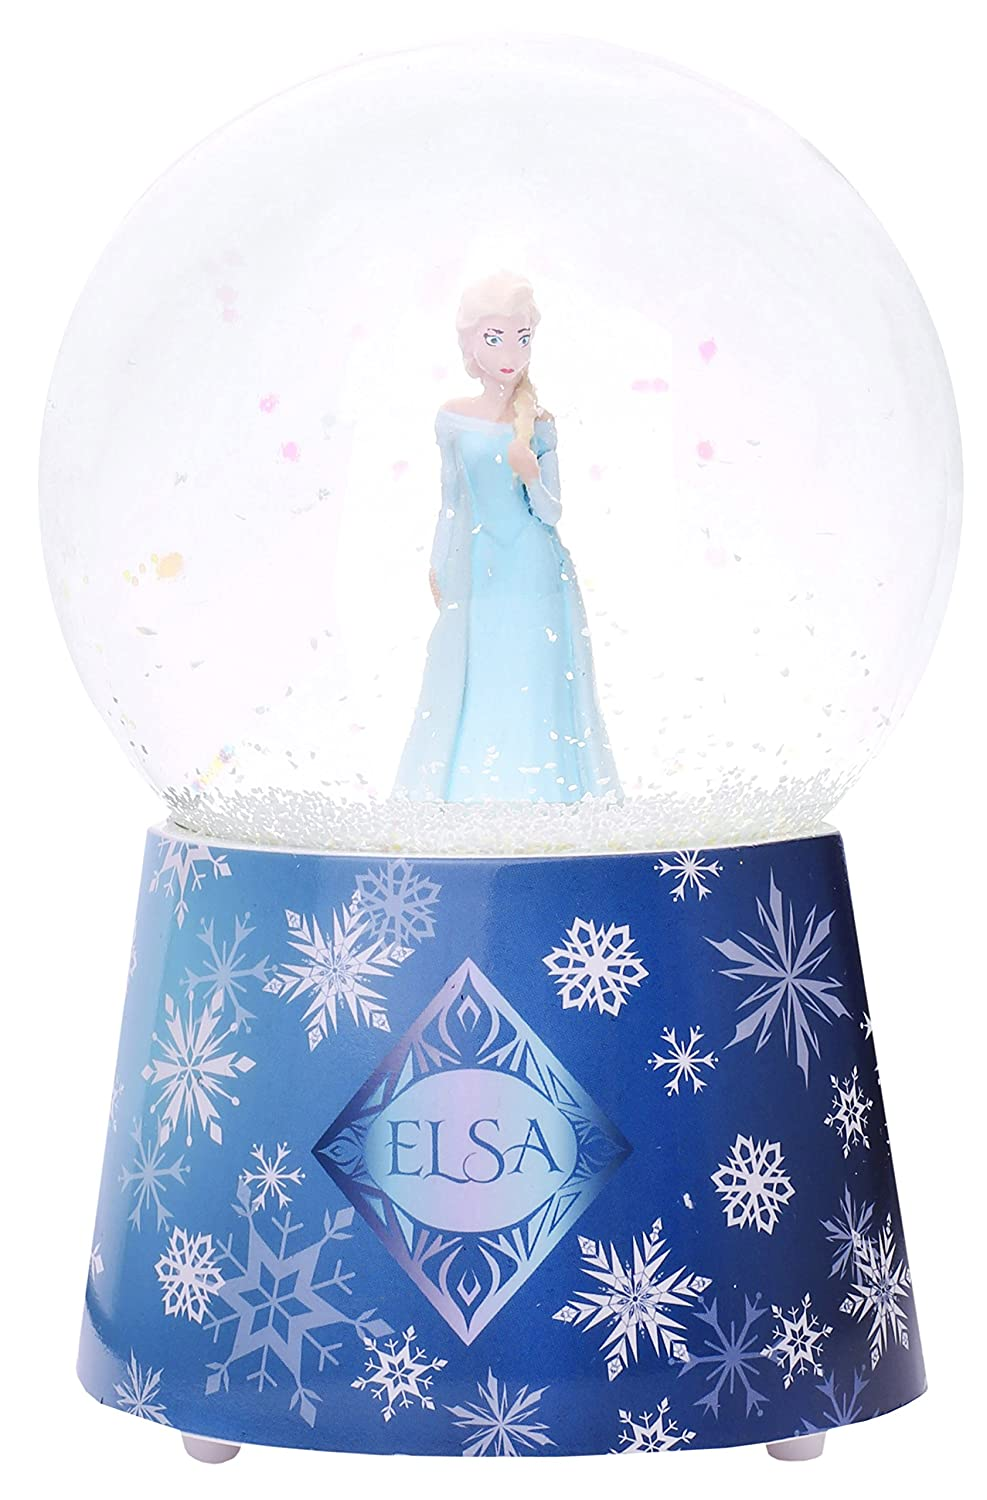 【おまけ付】 Trousselier Snow Elsa Frozen Snow Music Globe with Music Trousselier B00YEEOZ0E, 宮村:42739a86 --- irlandskayaliteratura.org